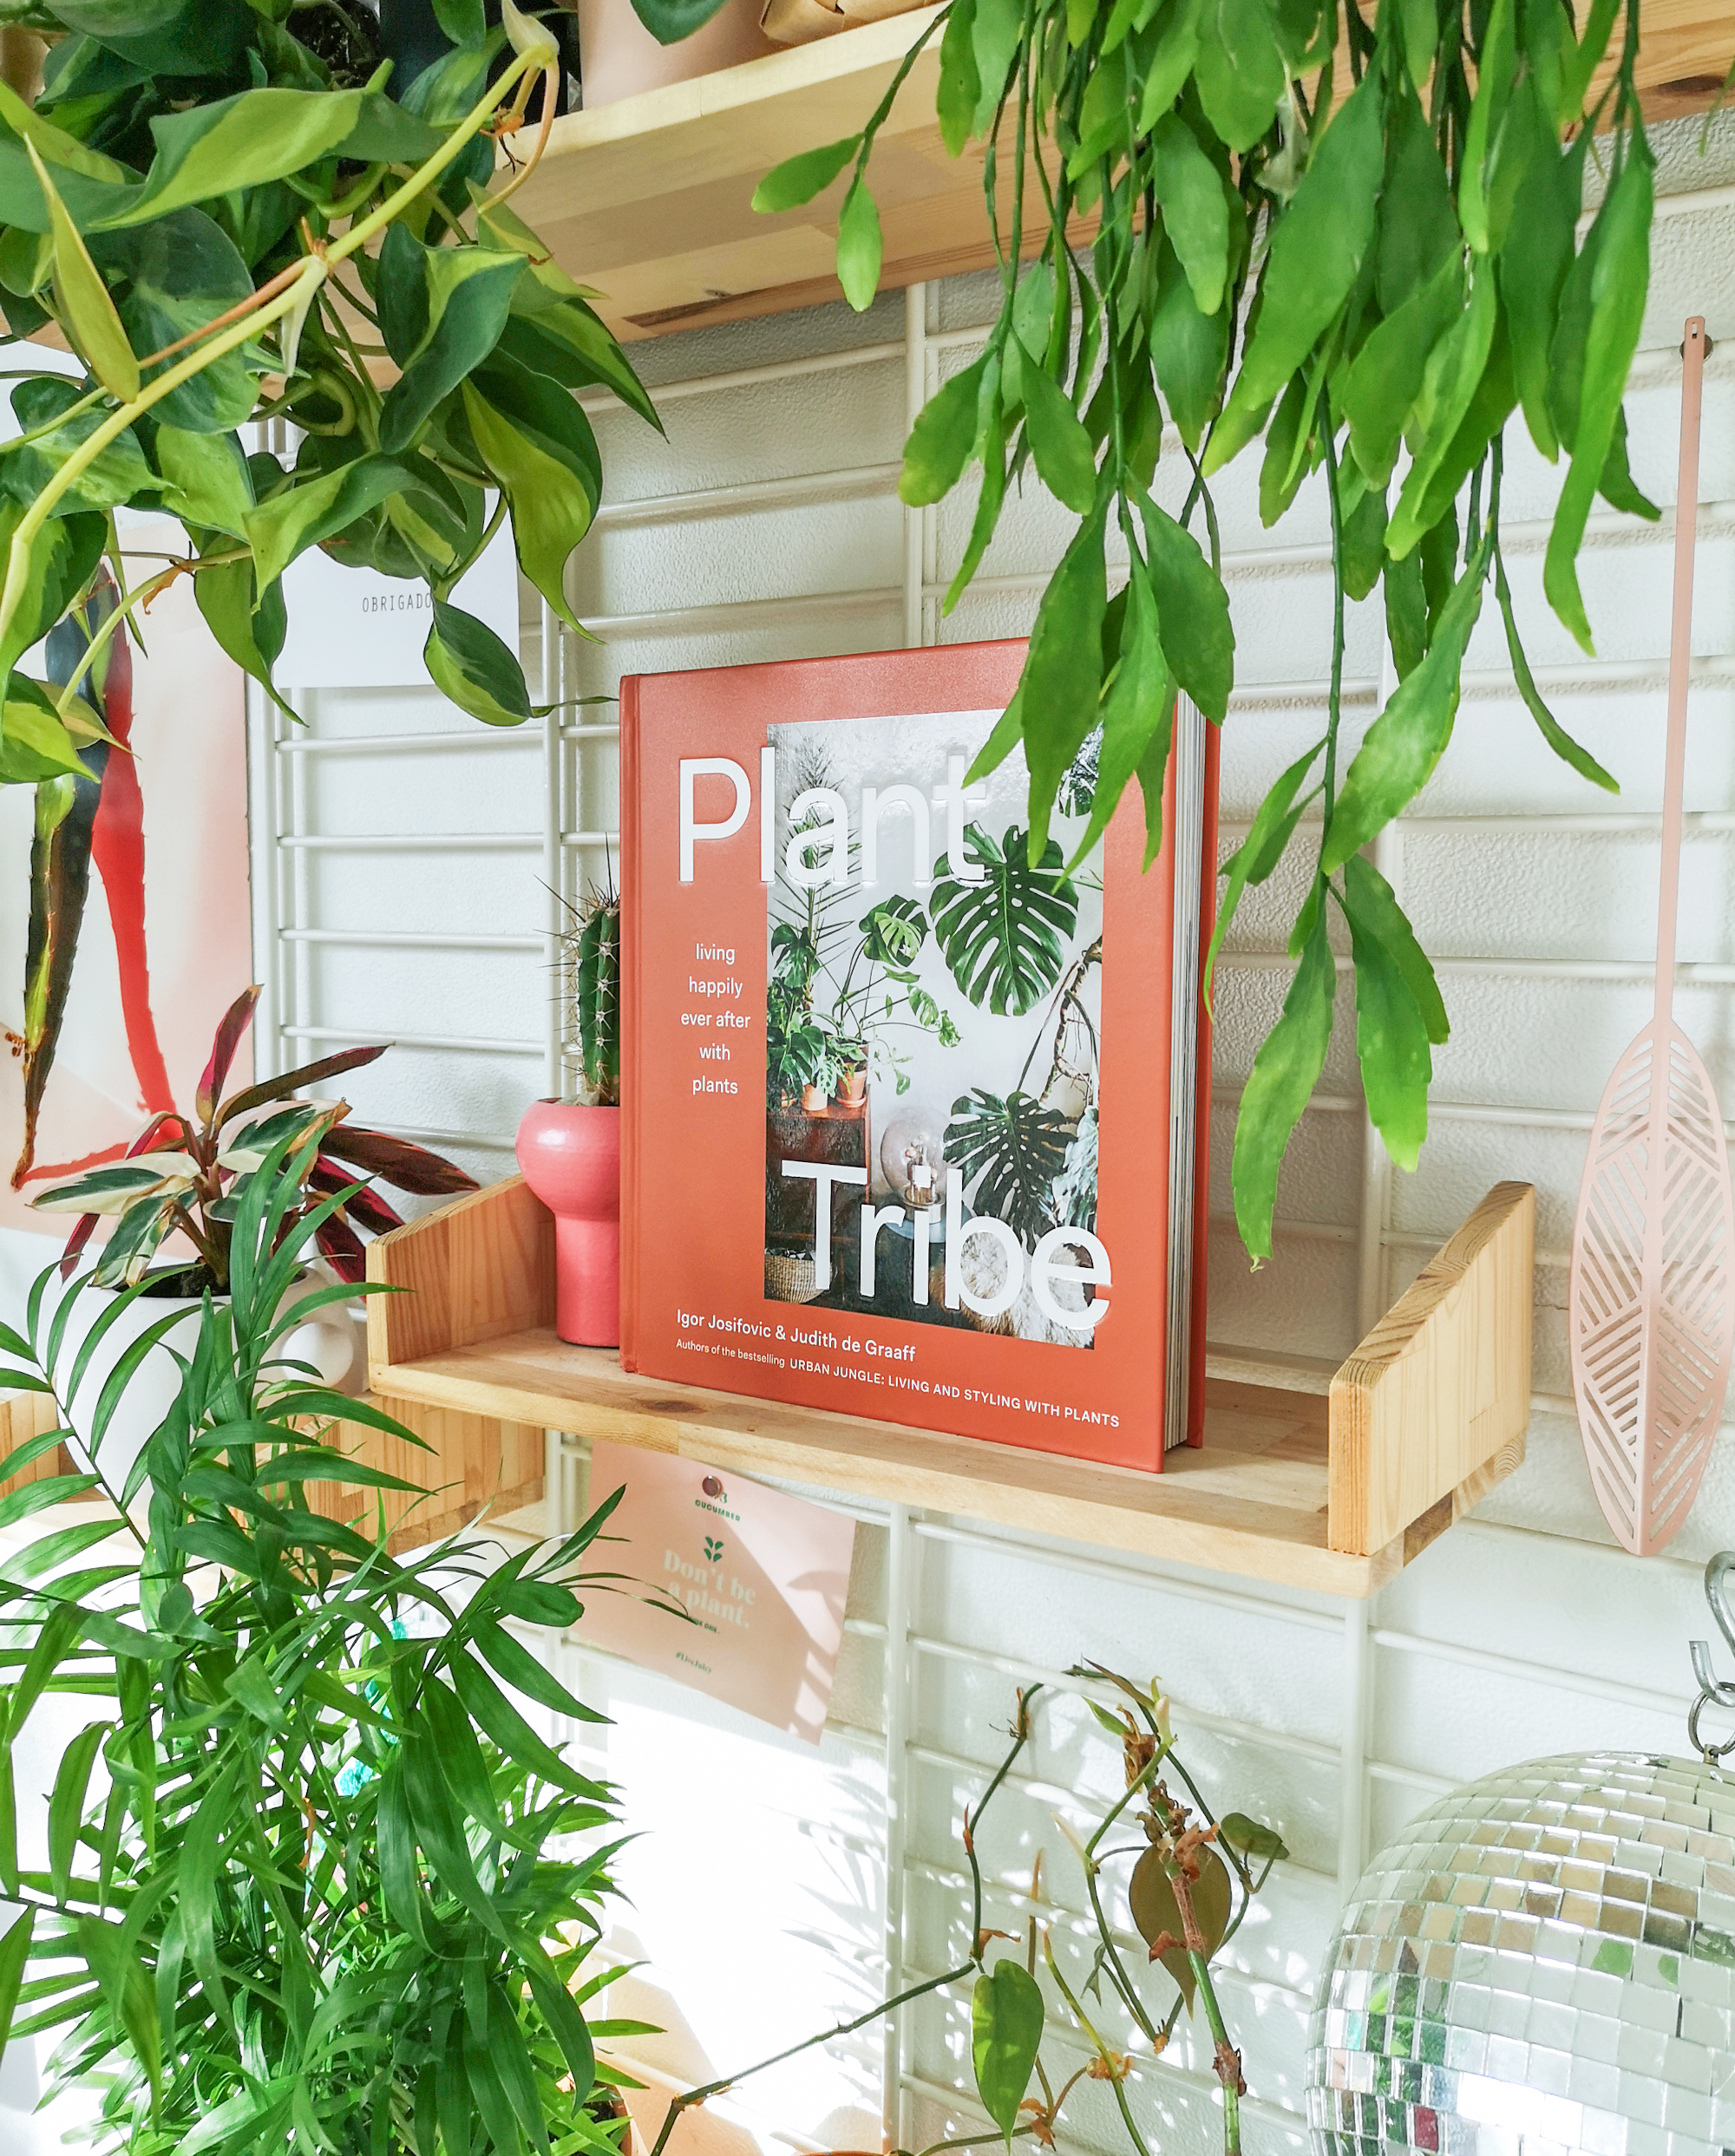 JOELIX.com | Plant Tribe book by Urban Jungle Bloggers